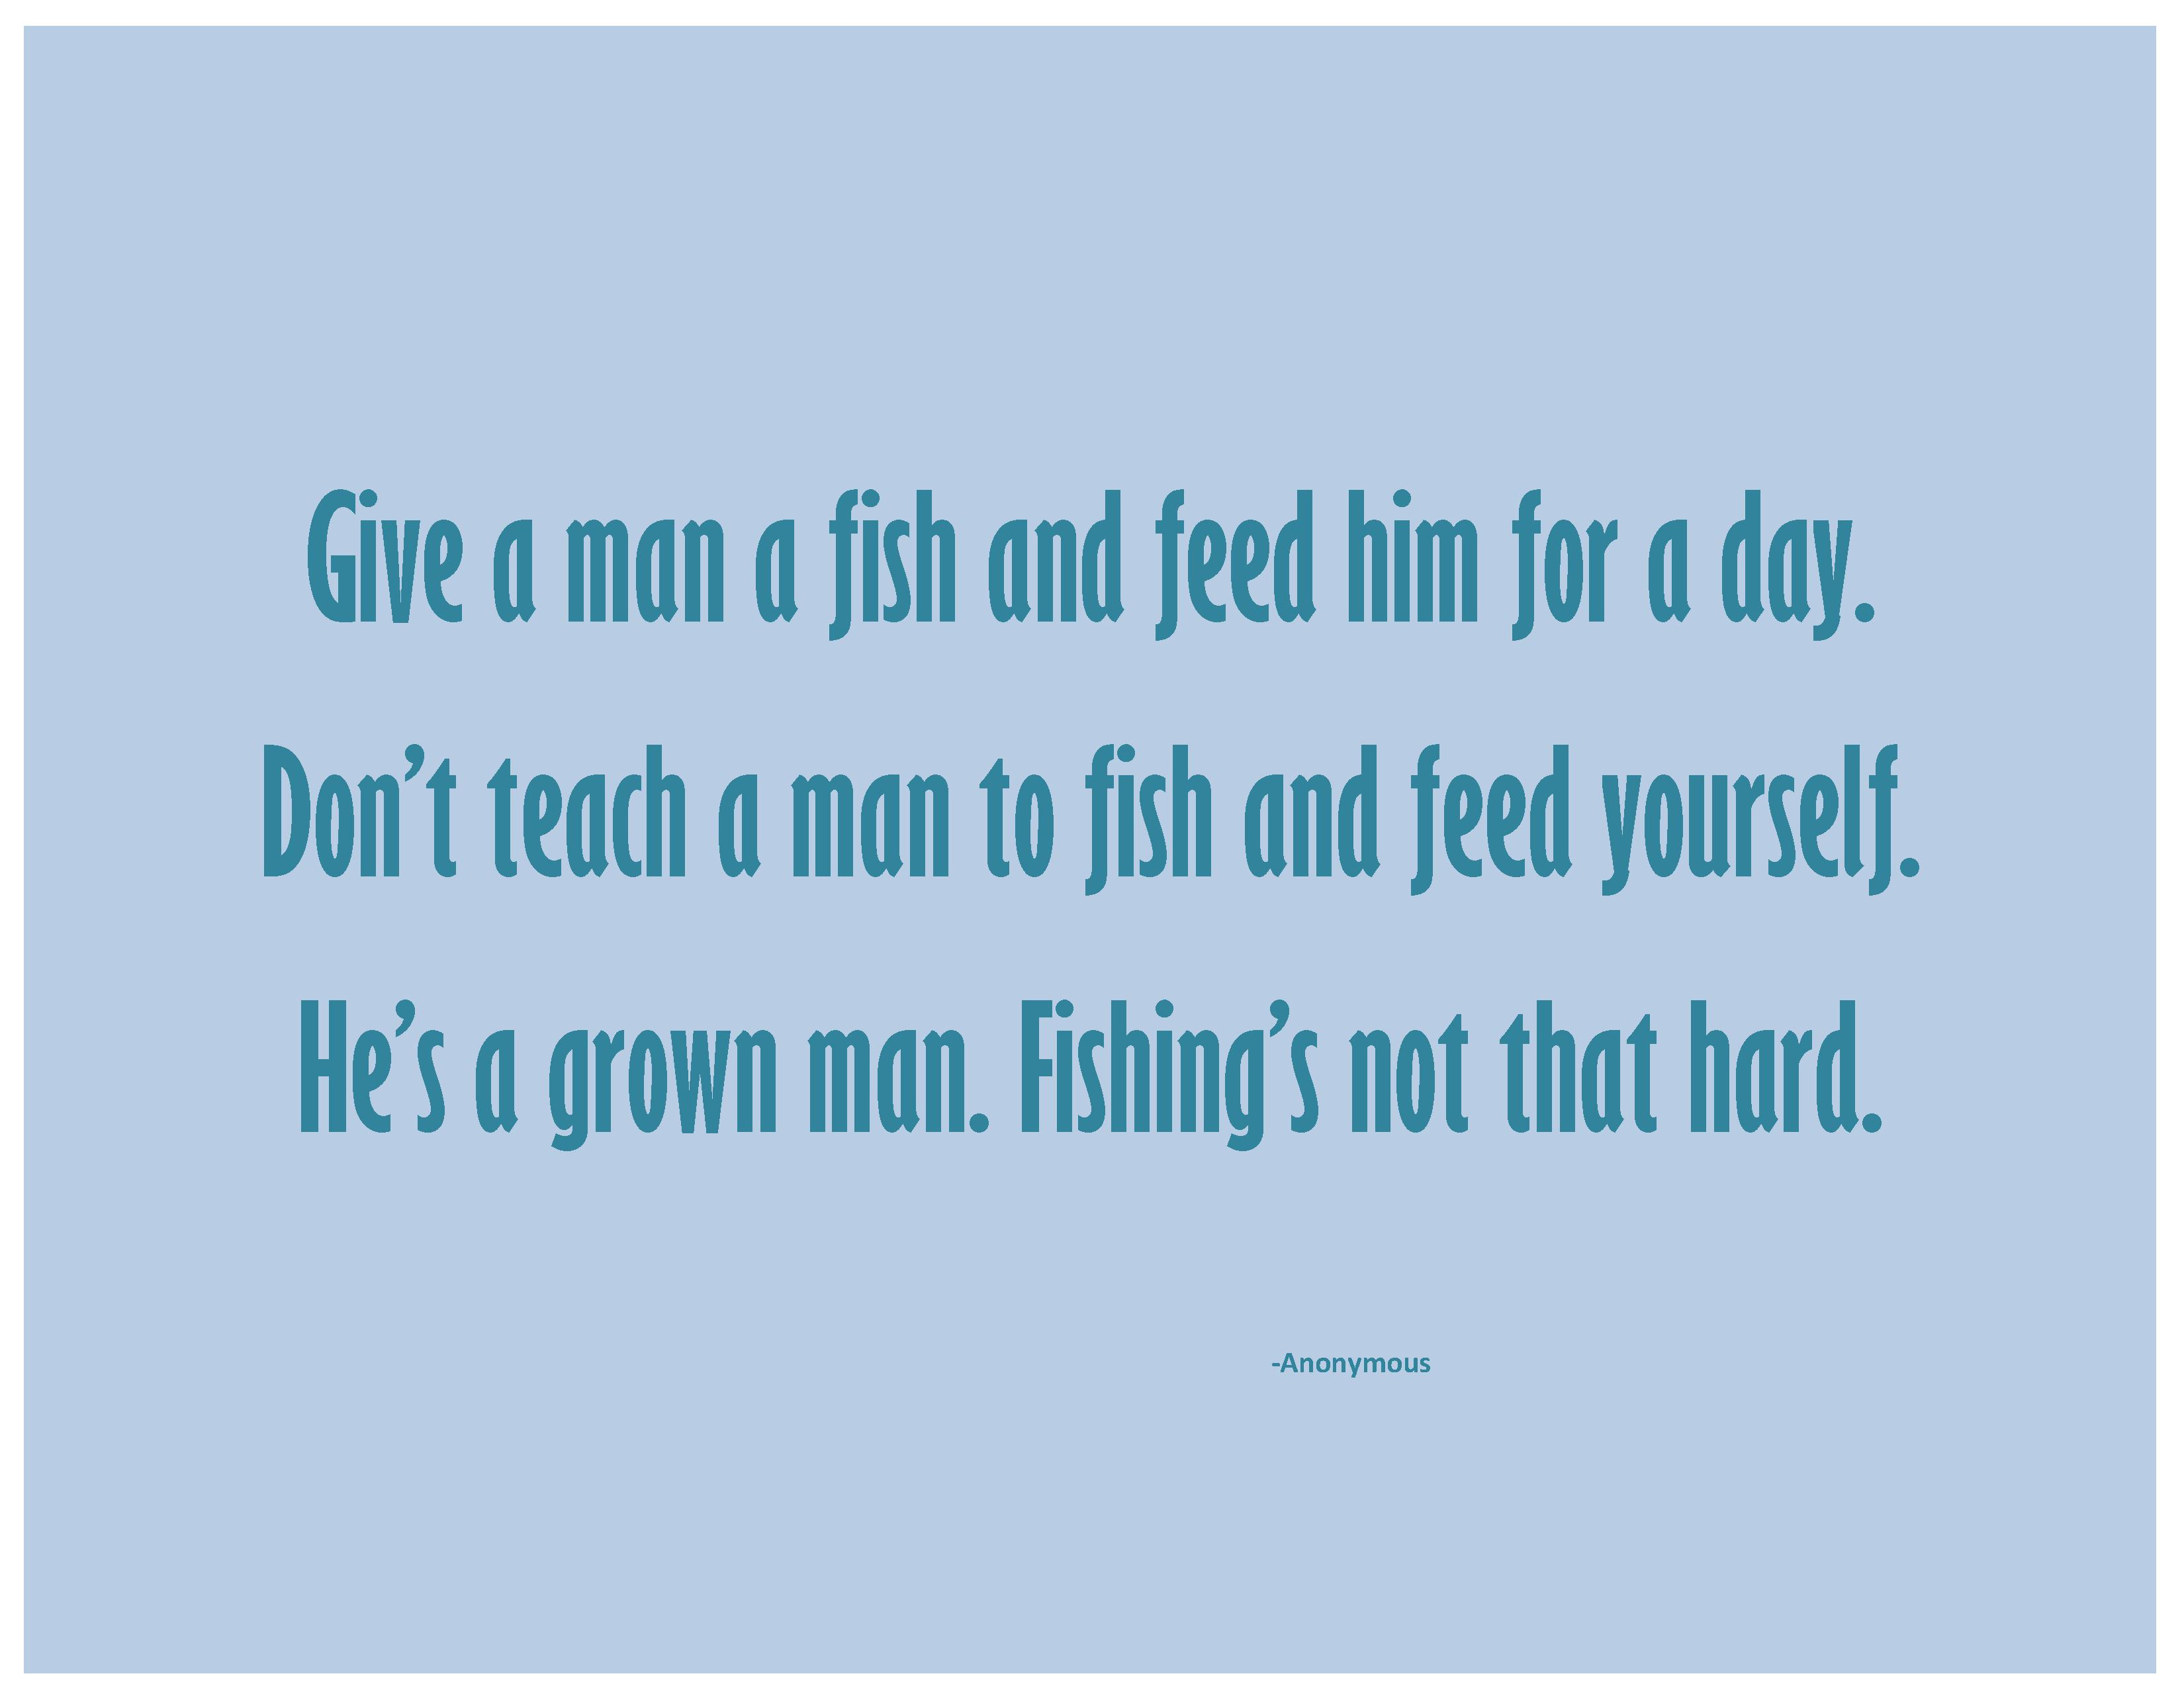 adventures of an empowered w can the mindset of entitlement teach a man to fish dont teach page1